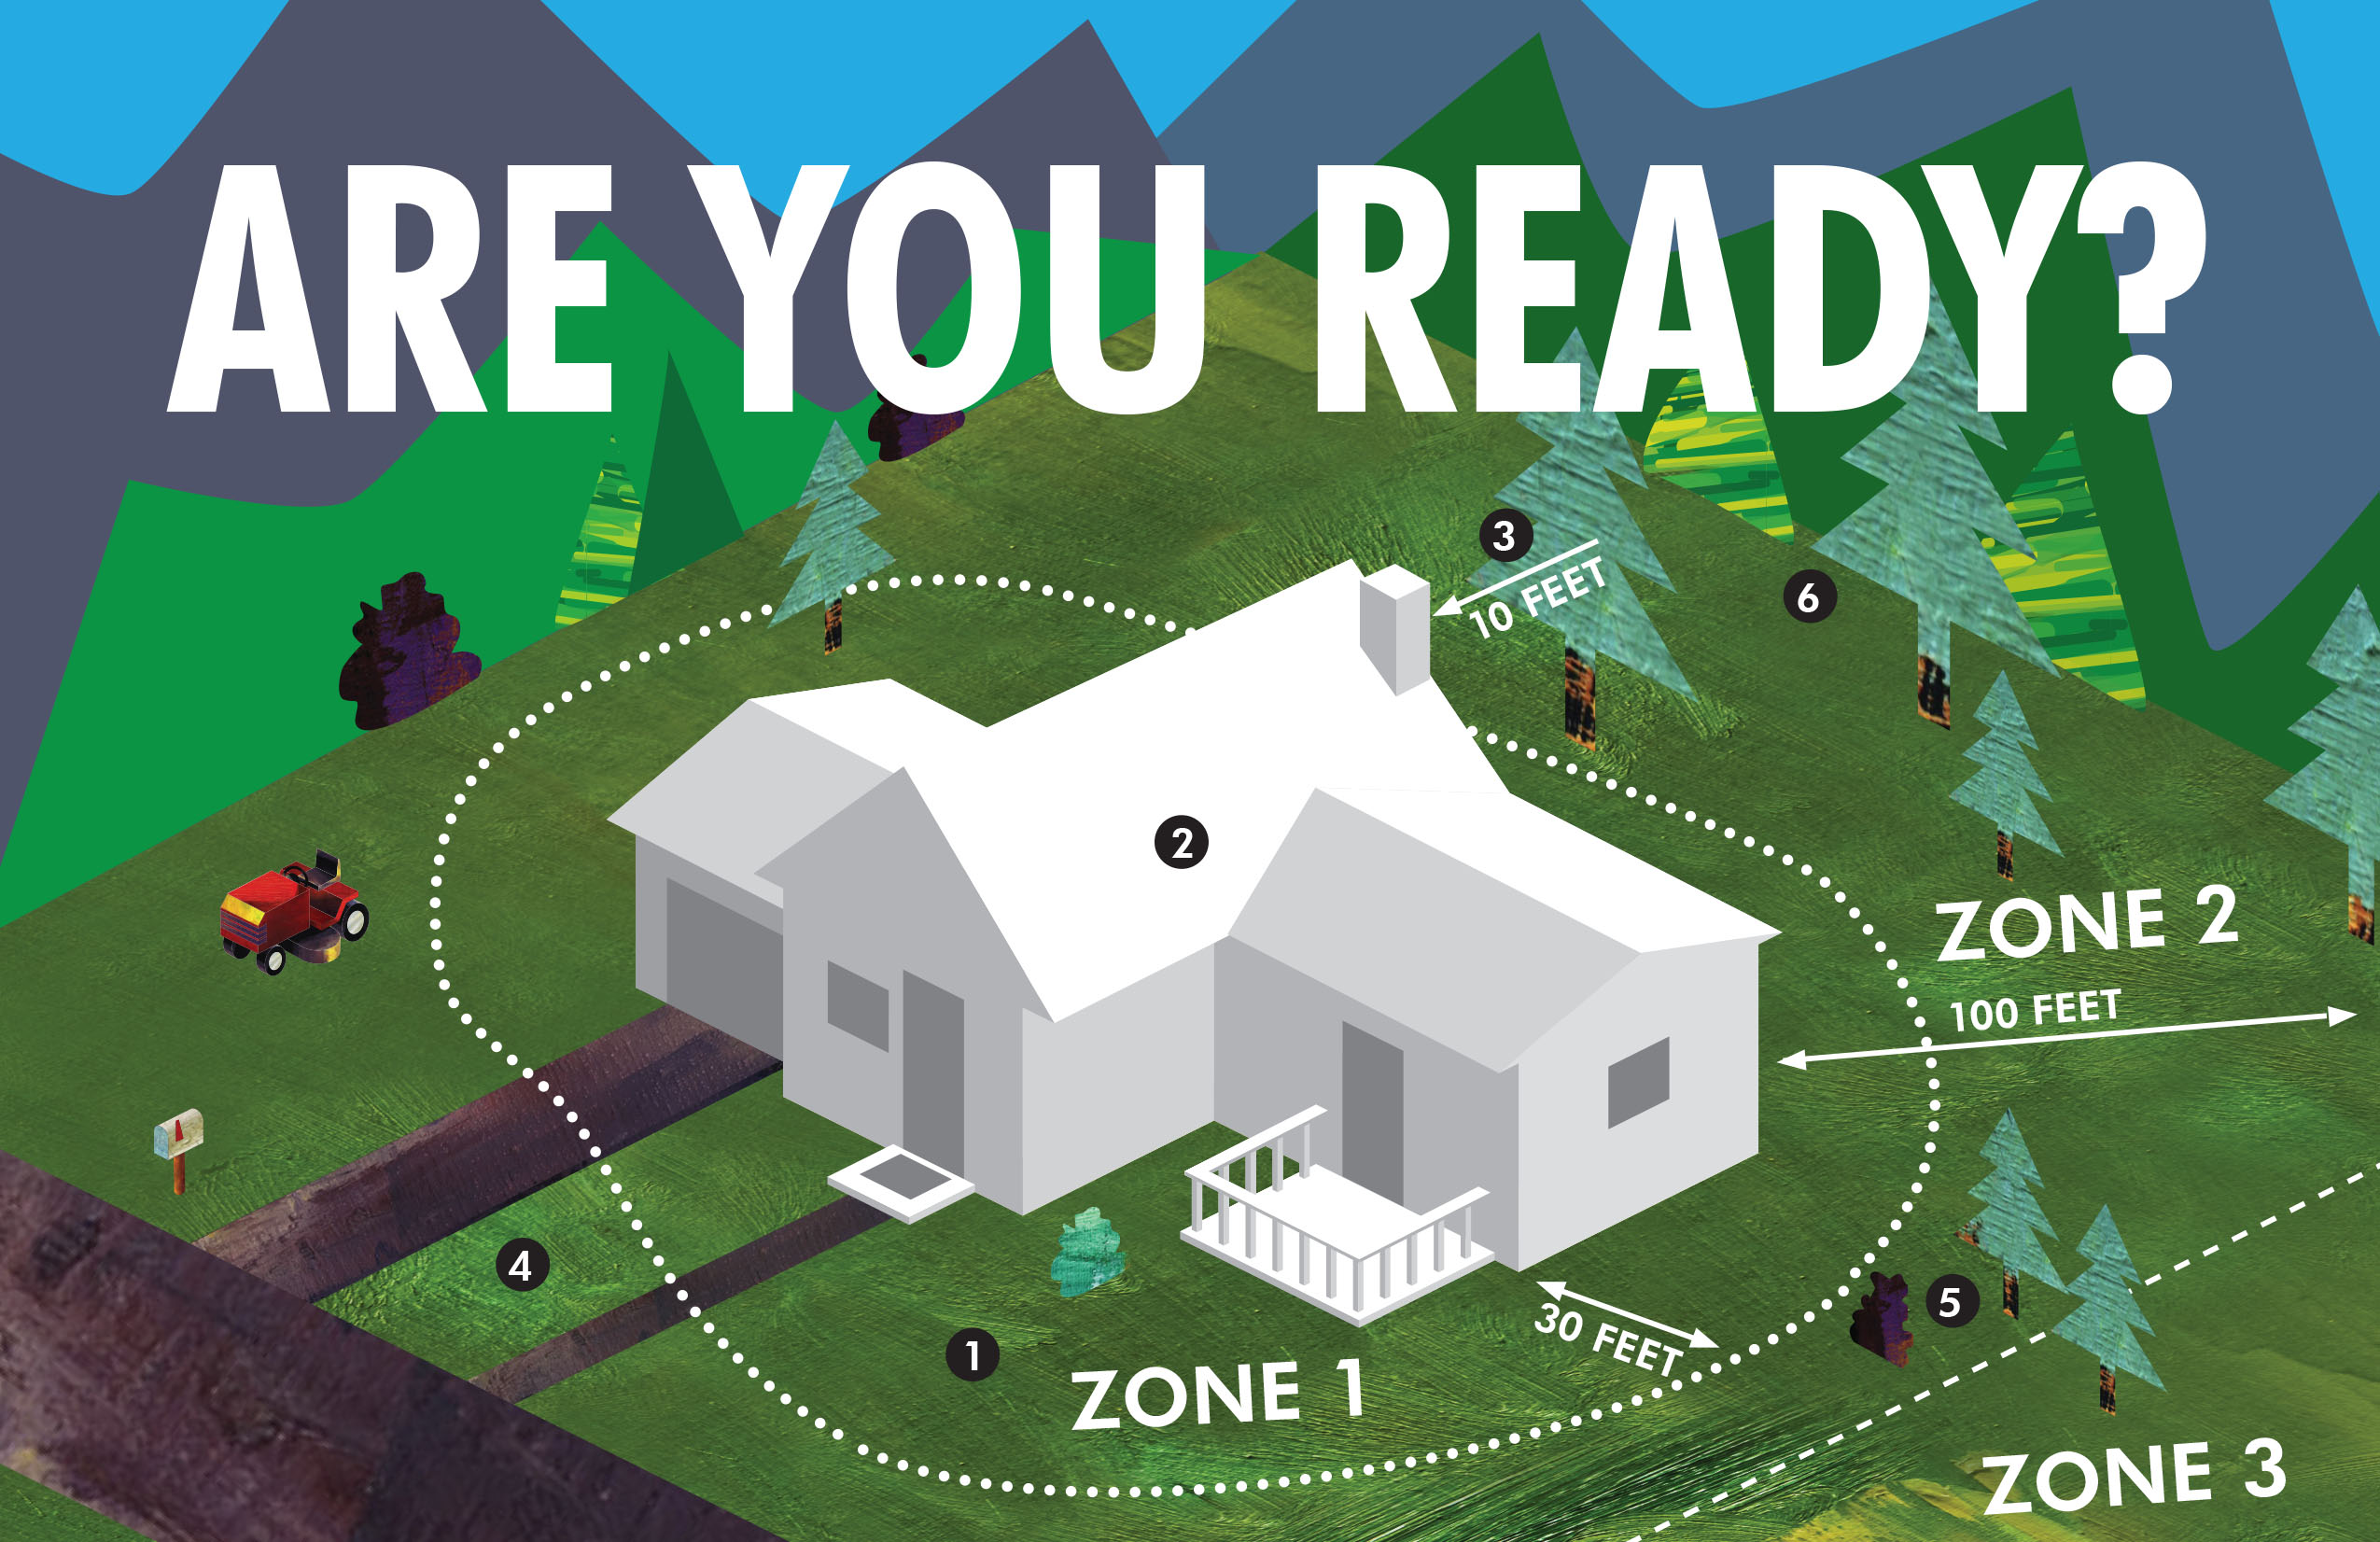 Are you Ready? shows zones that should be cleared for fire preparedness